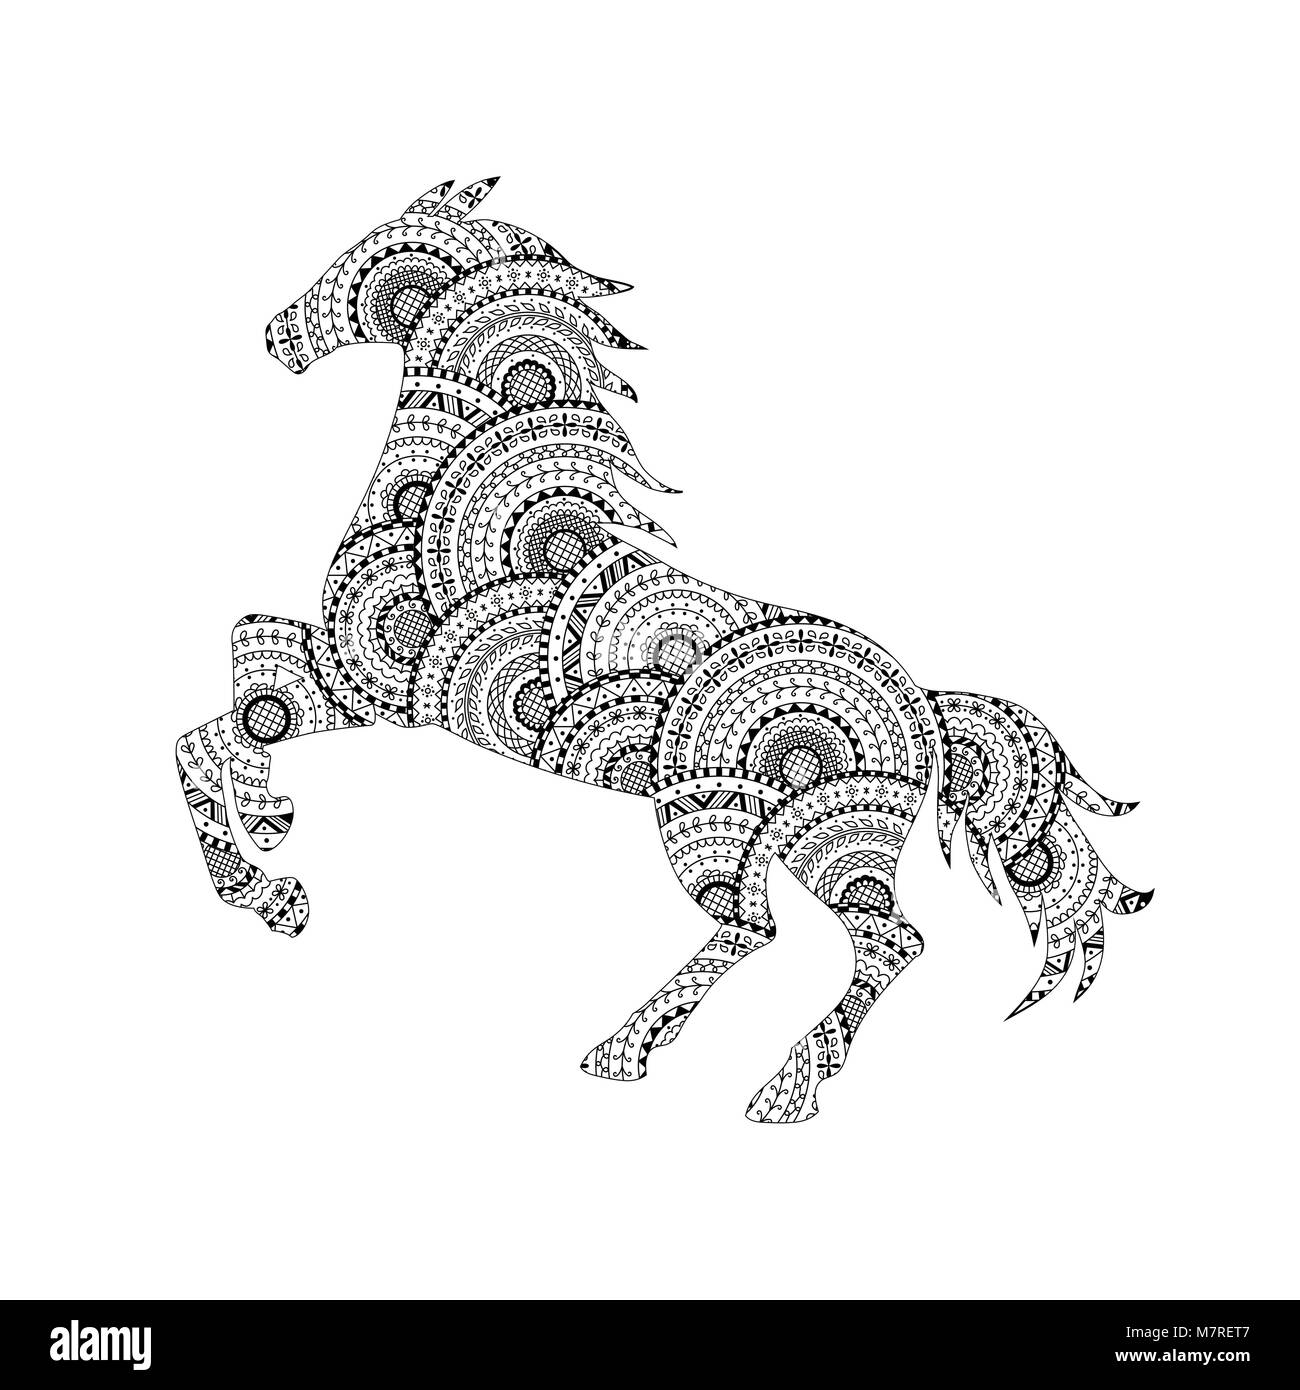 Vector Illustration Of Horse Silhouette From Black And White Mandalas Coloring Page Book Animal Anti Stress For Adult